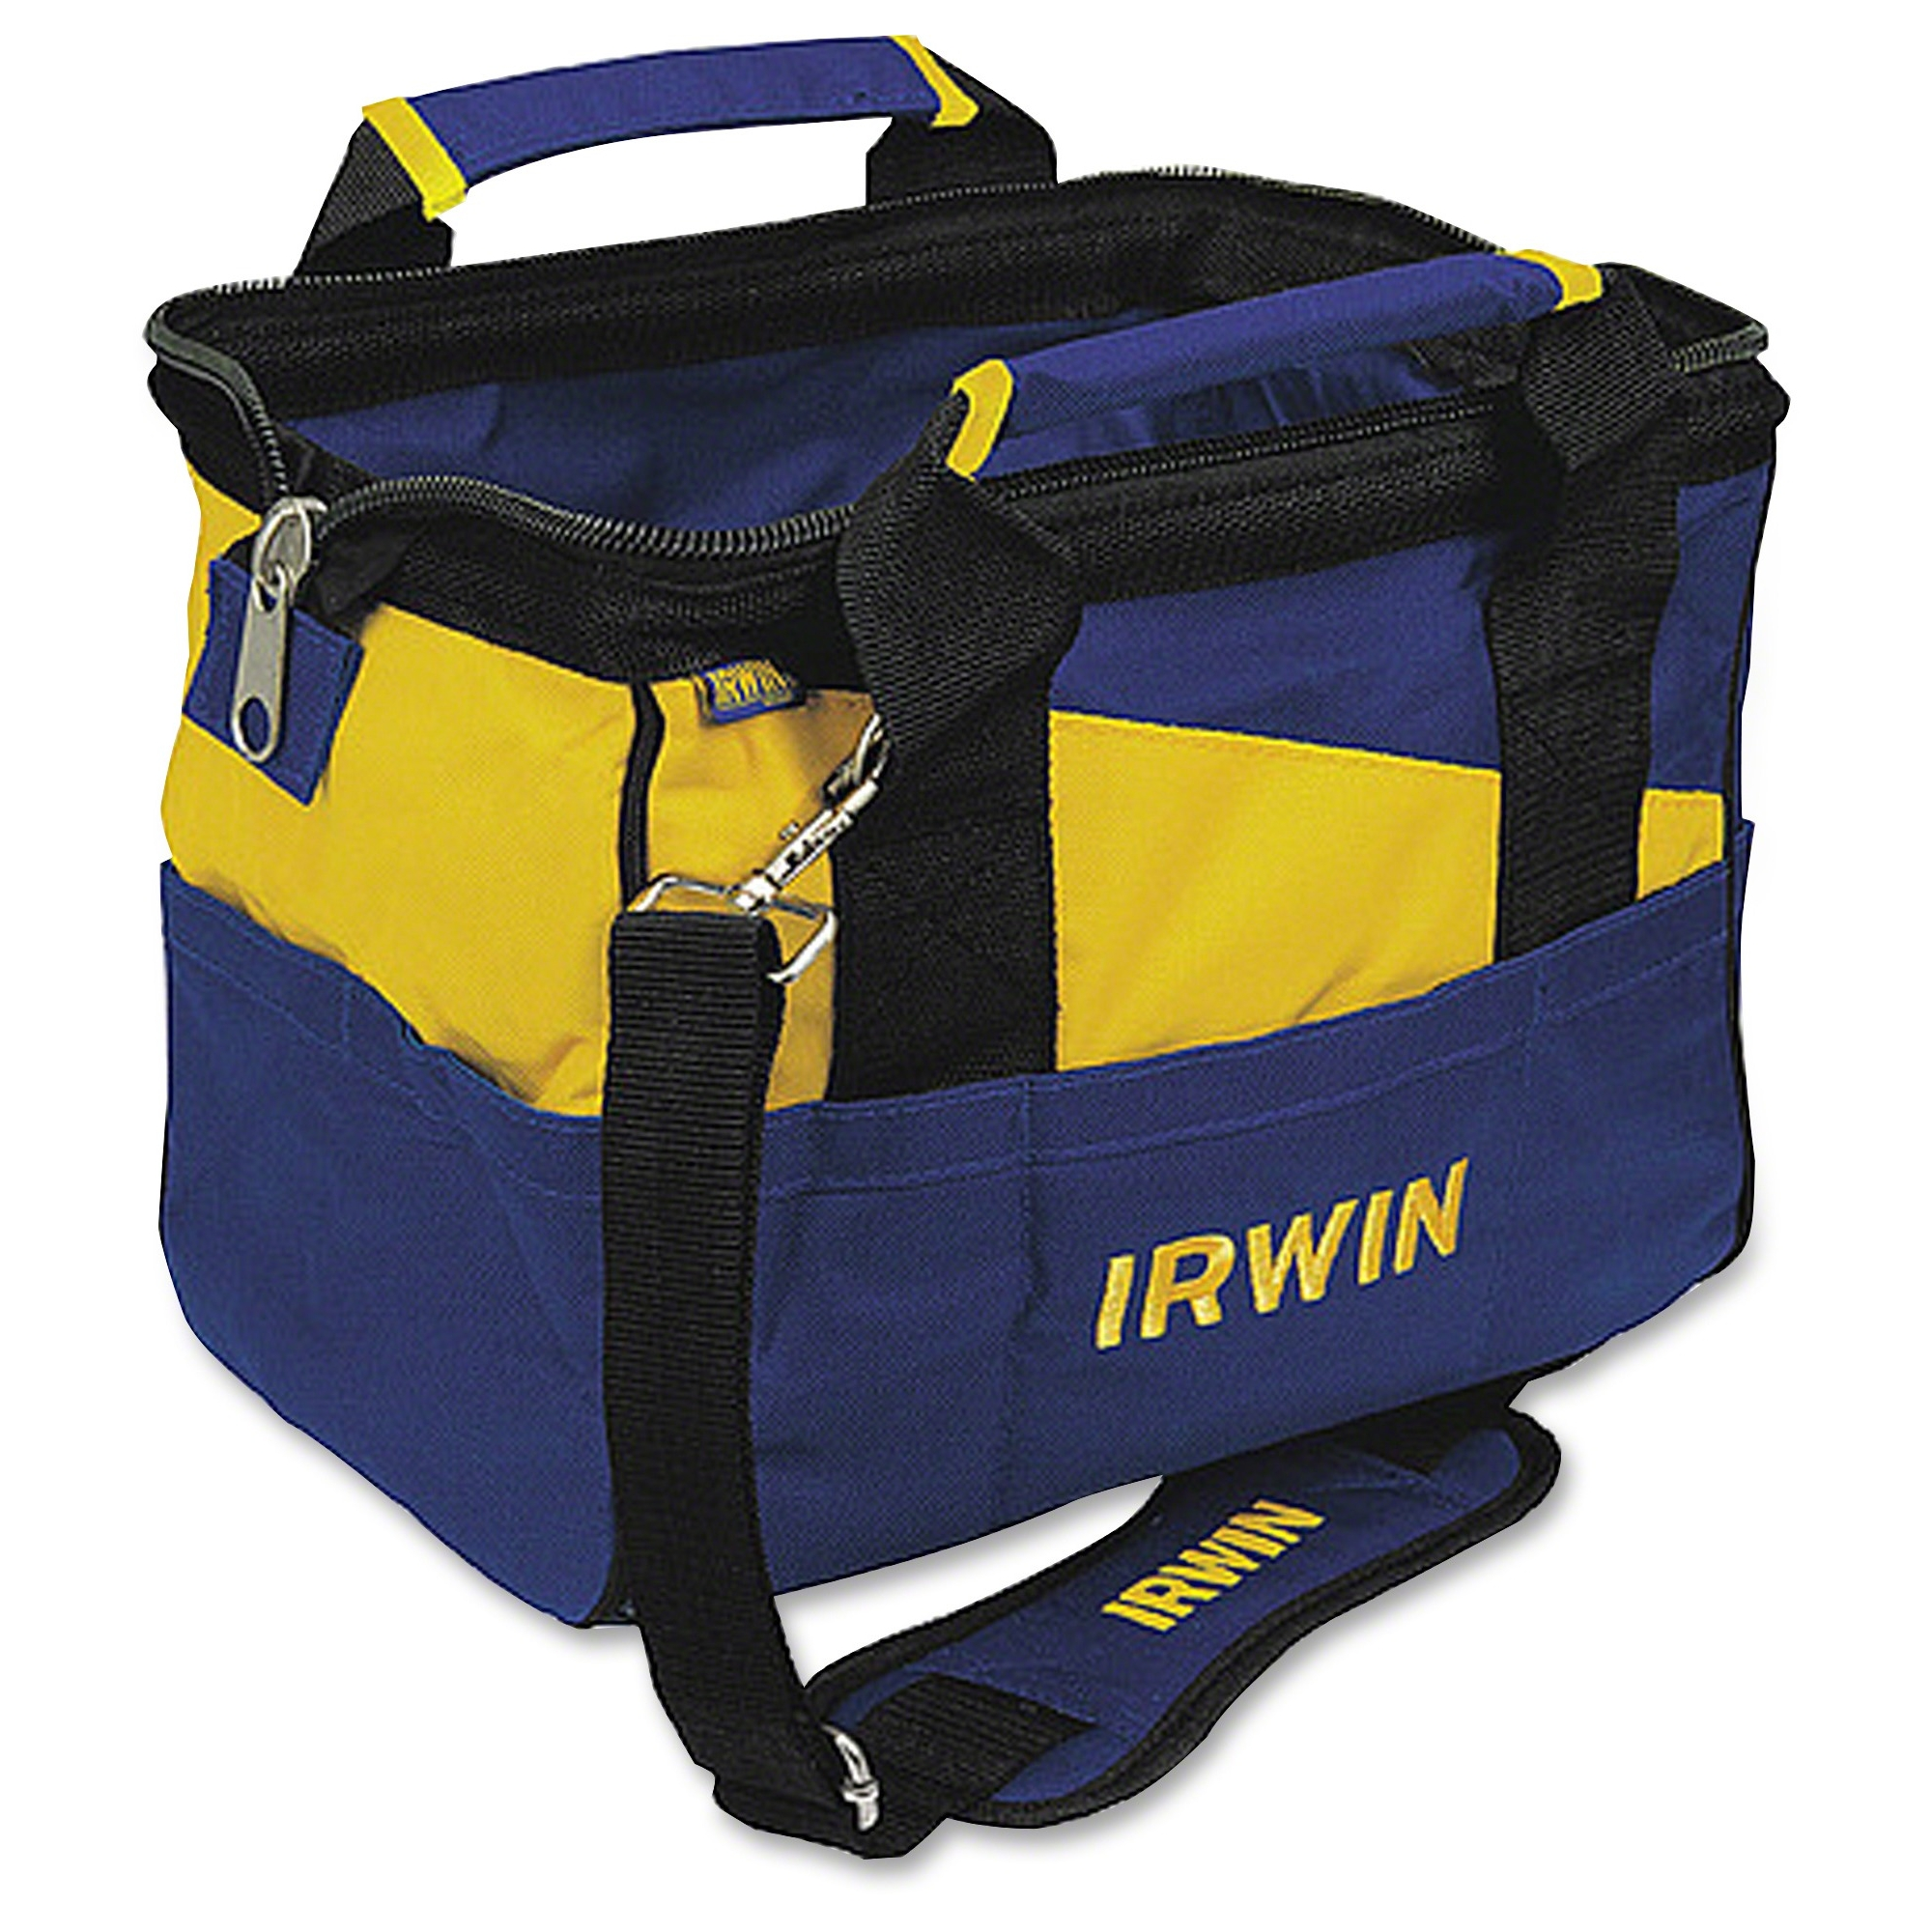 IRWIN Tools Contractor's Storage Bag, 12""